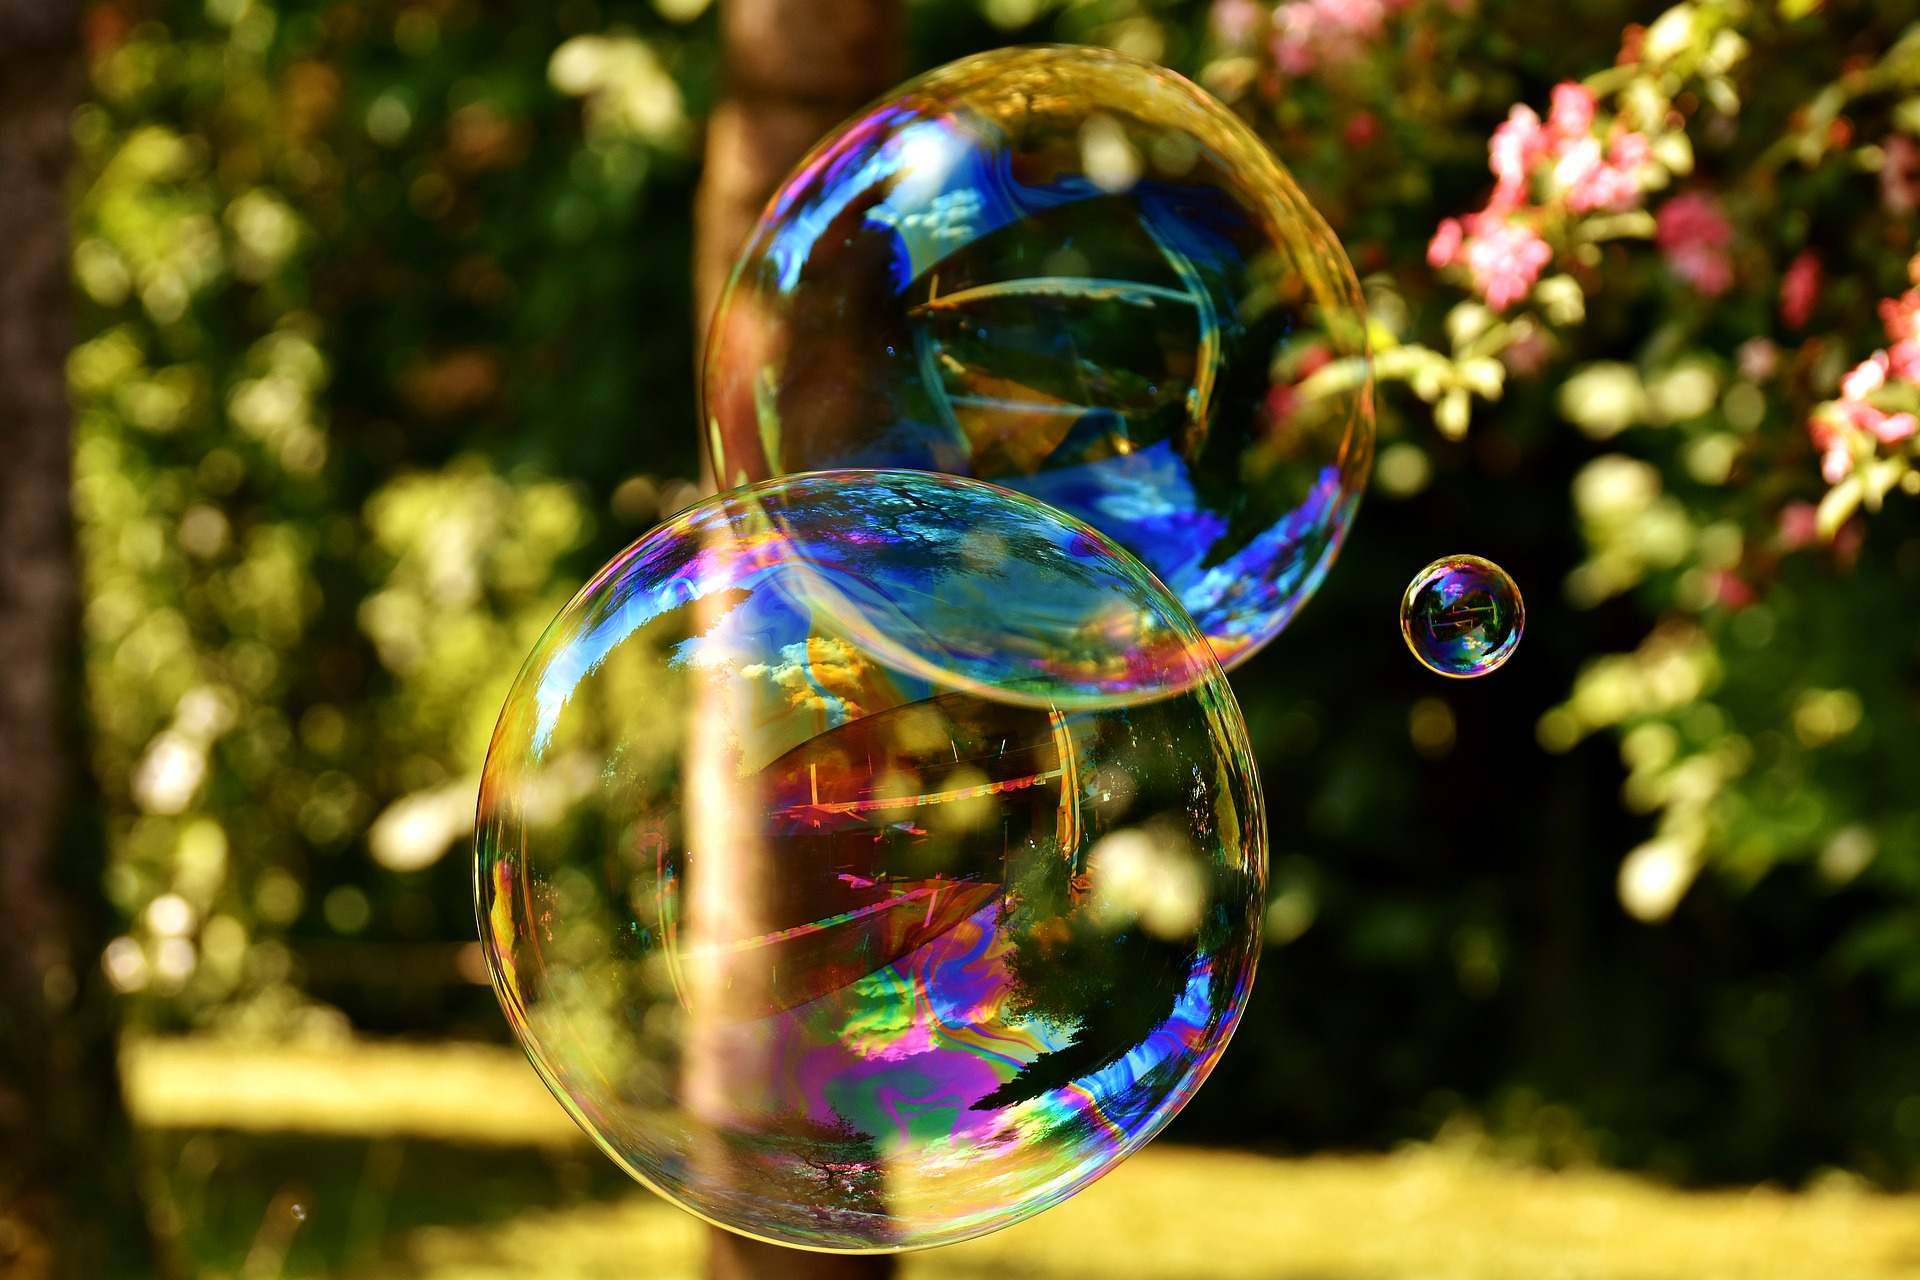 soap-bubble-2403673_1920